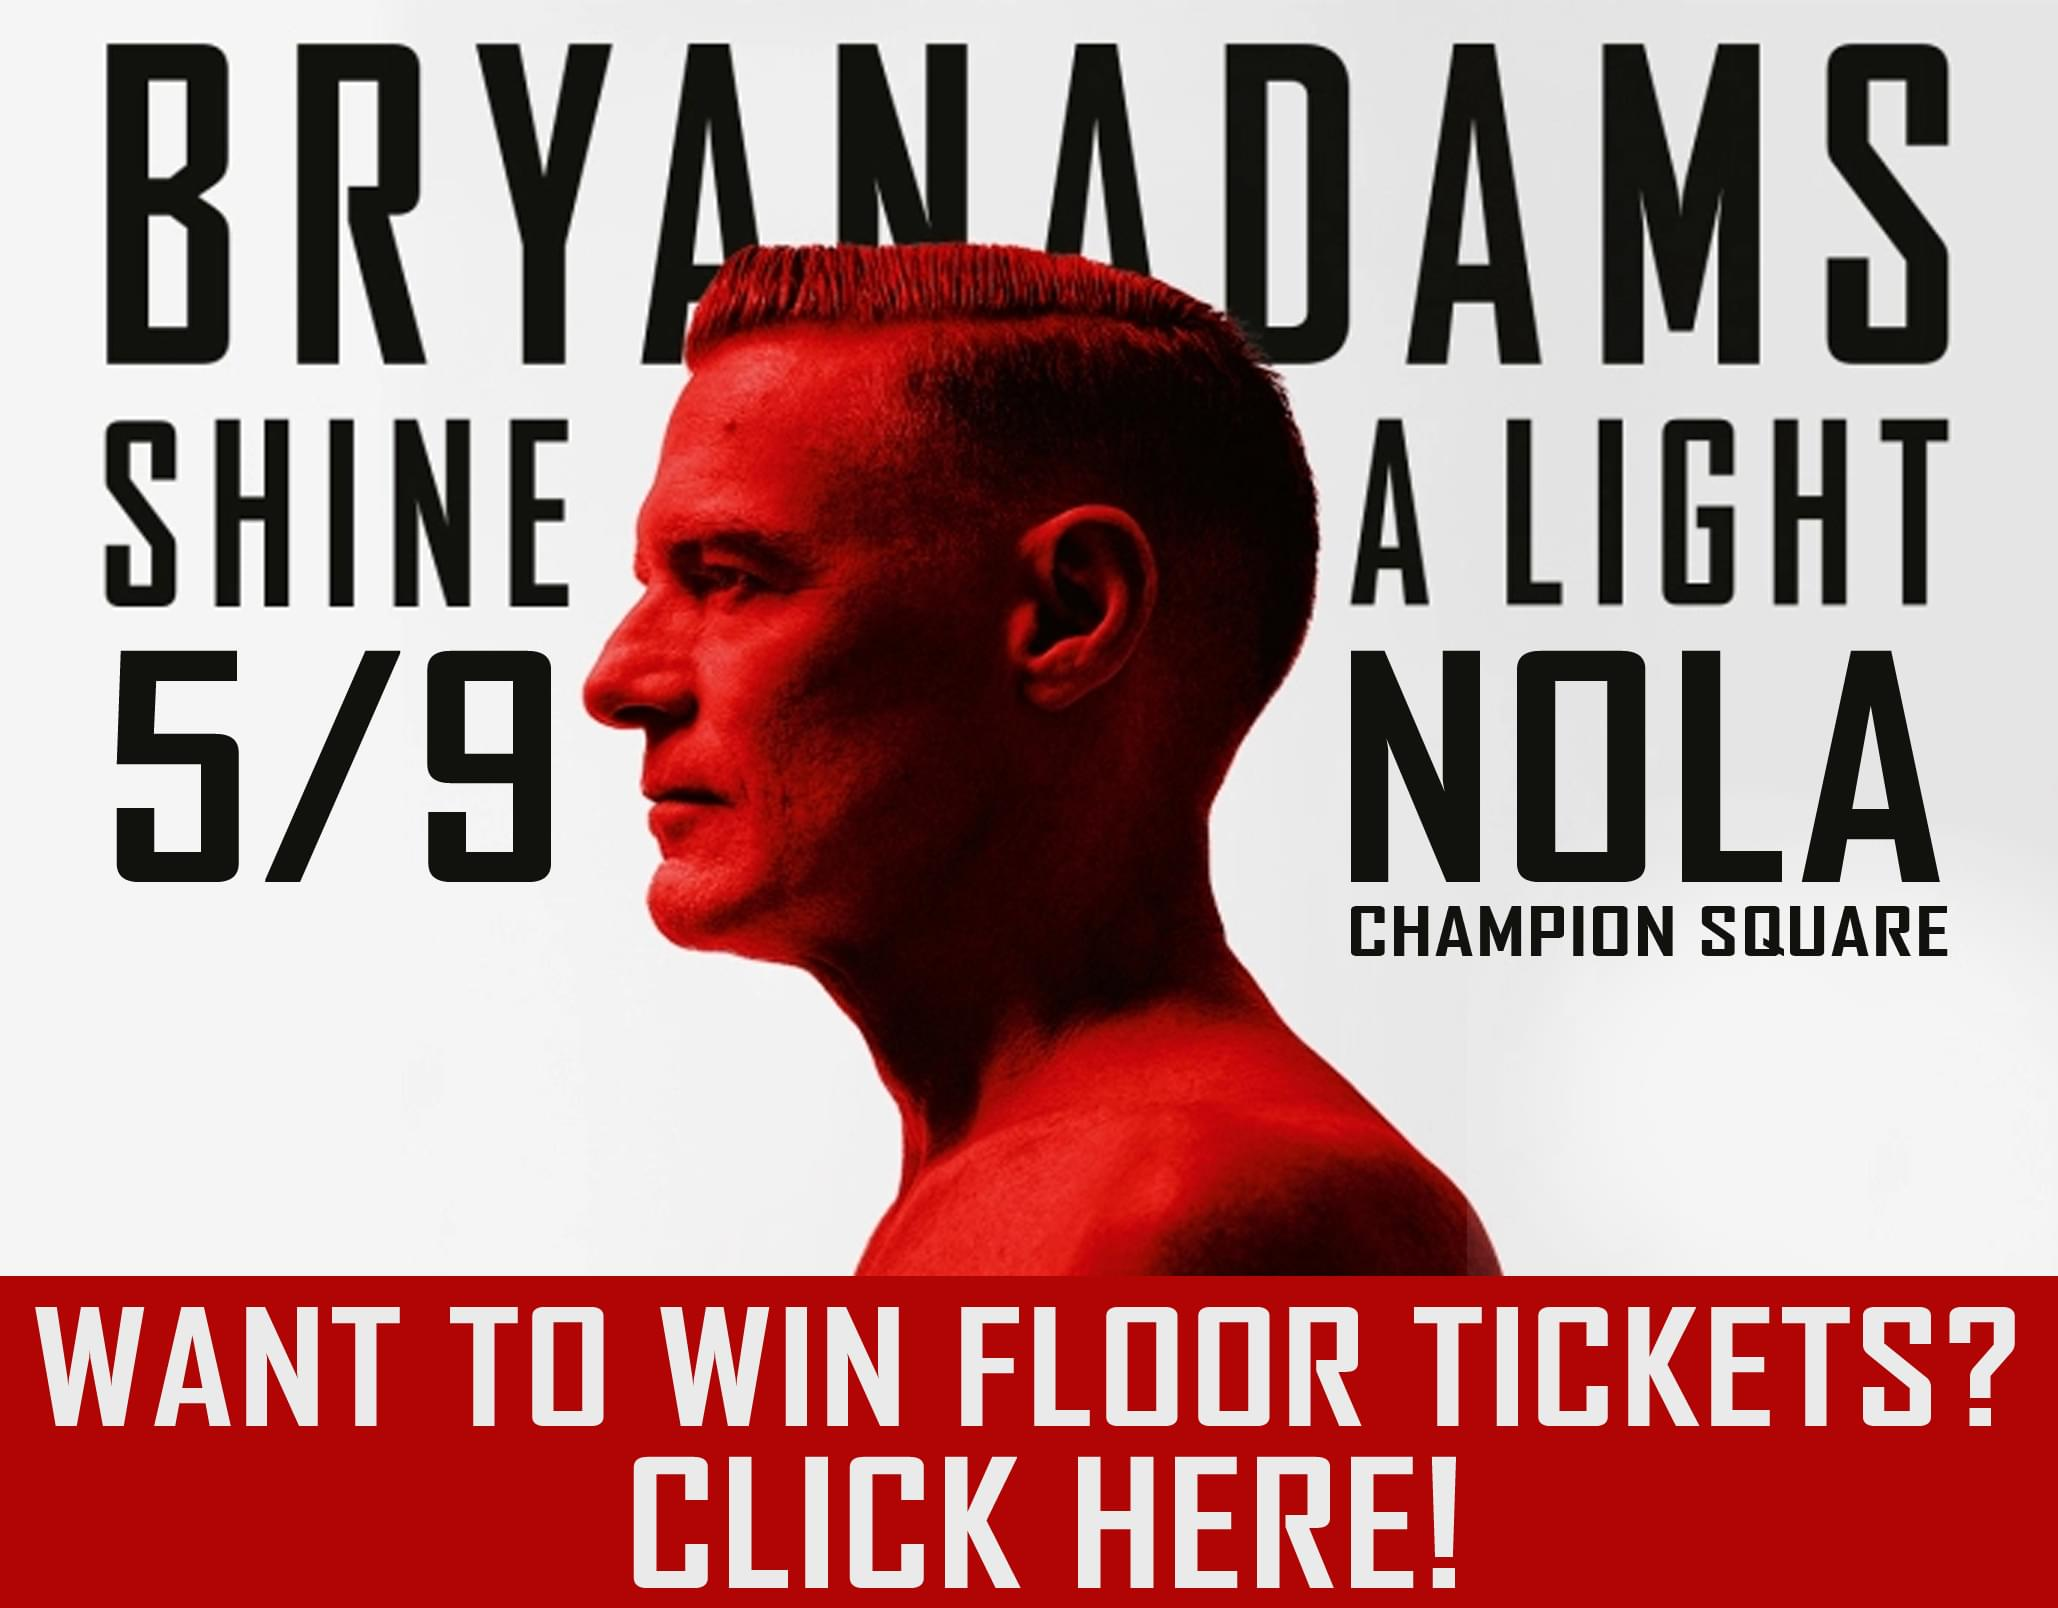 Win BRYAN ADAMS Tickets!